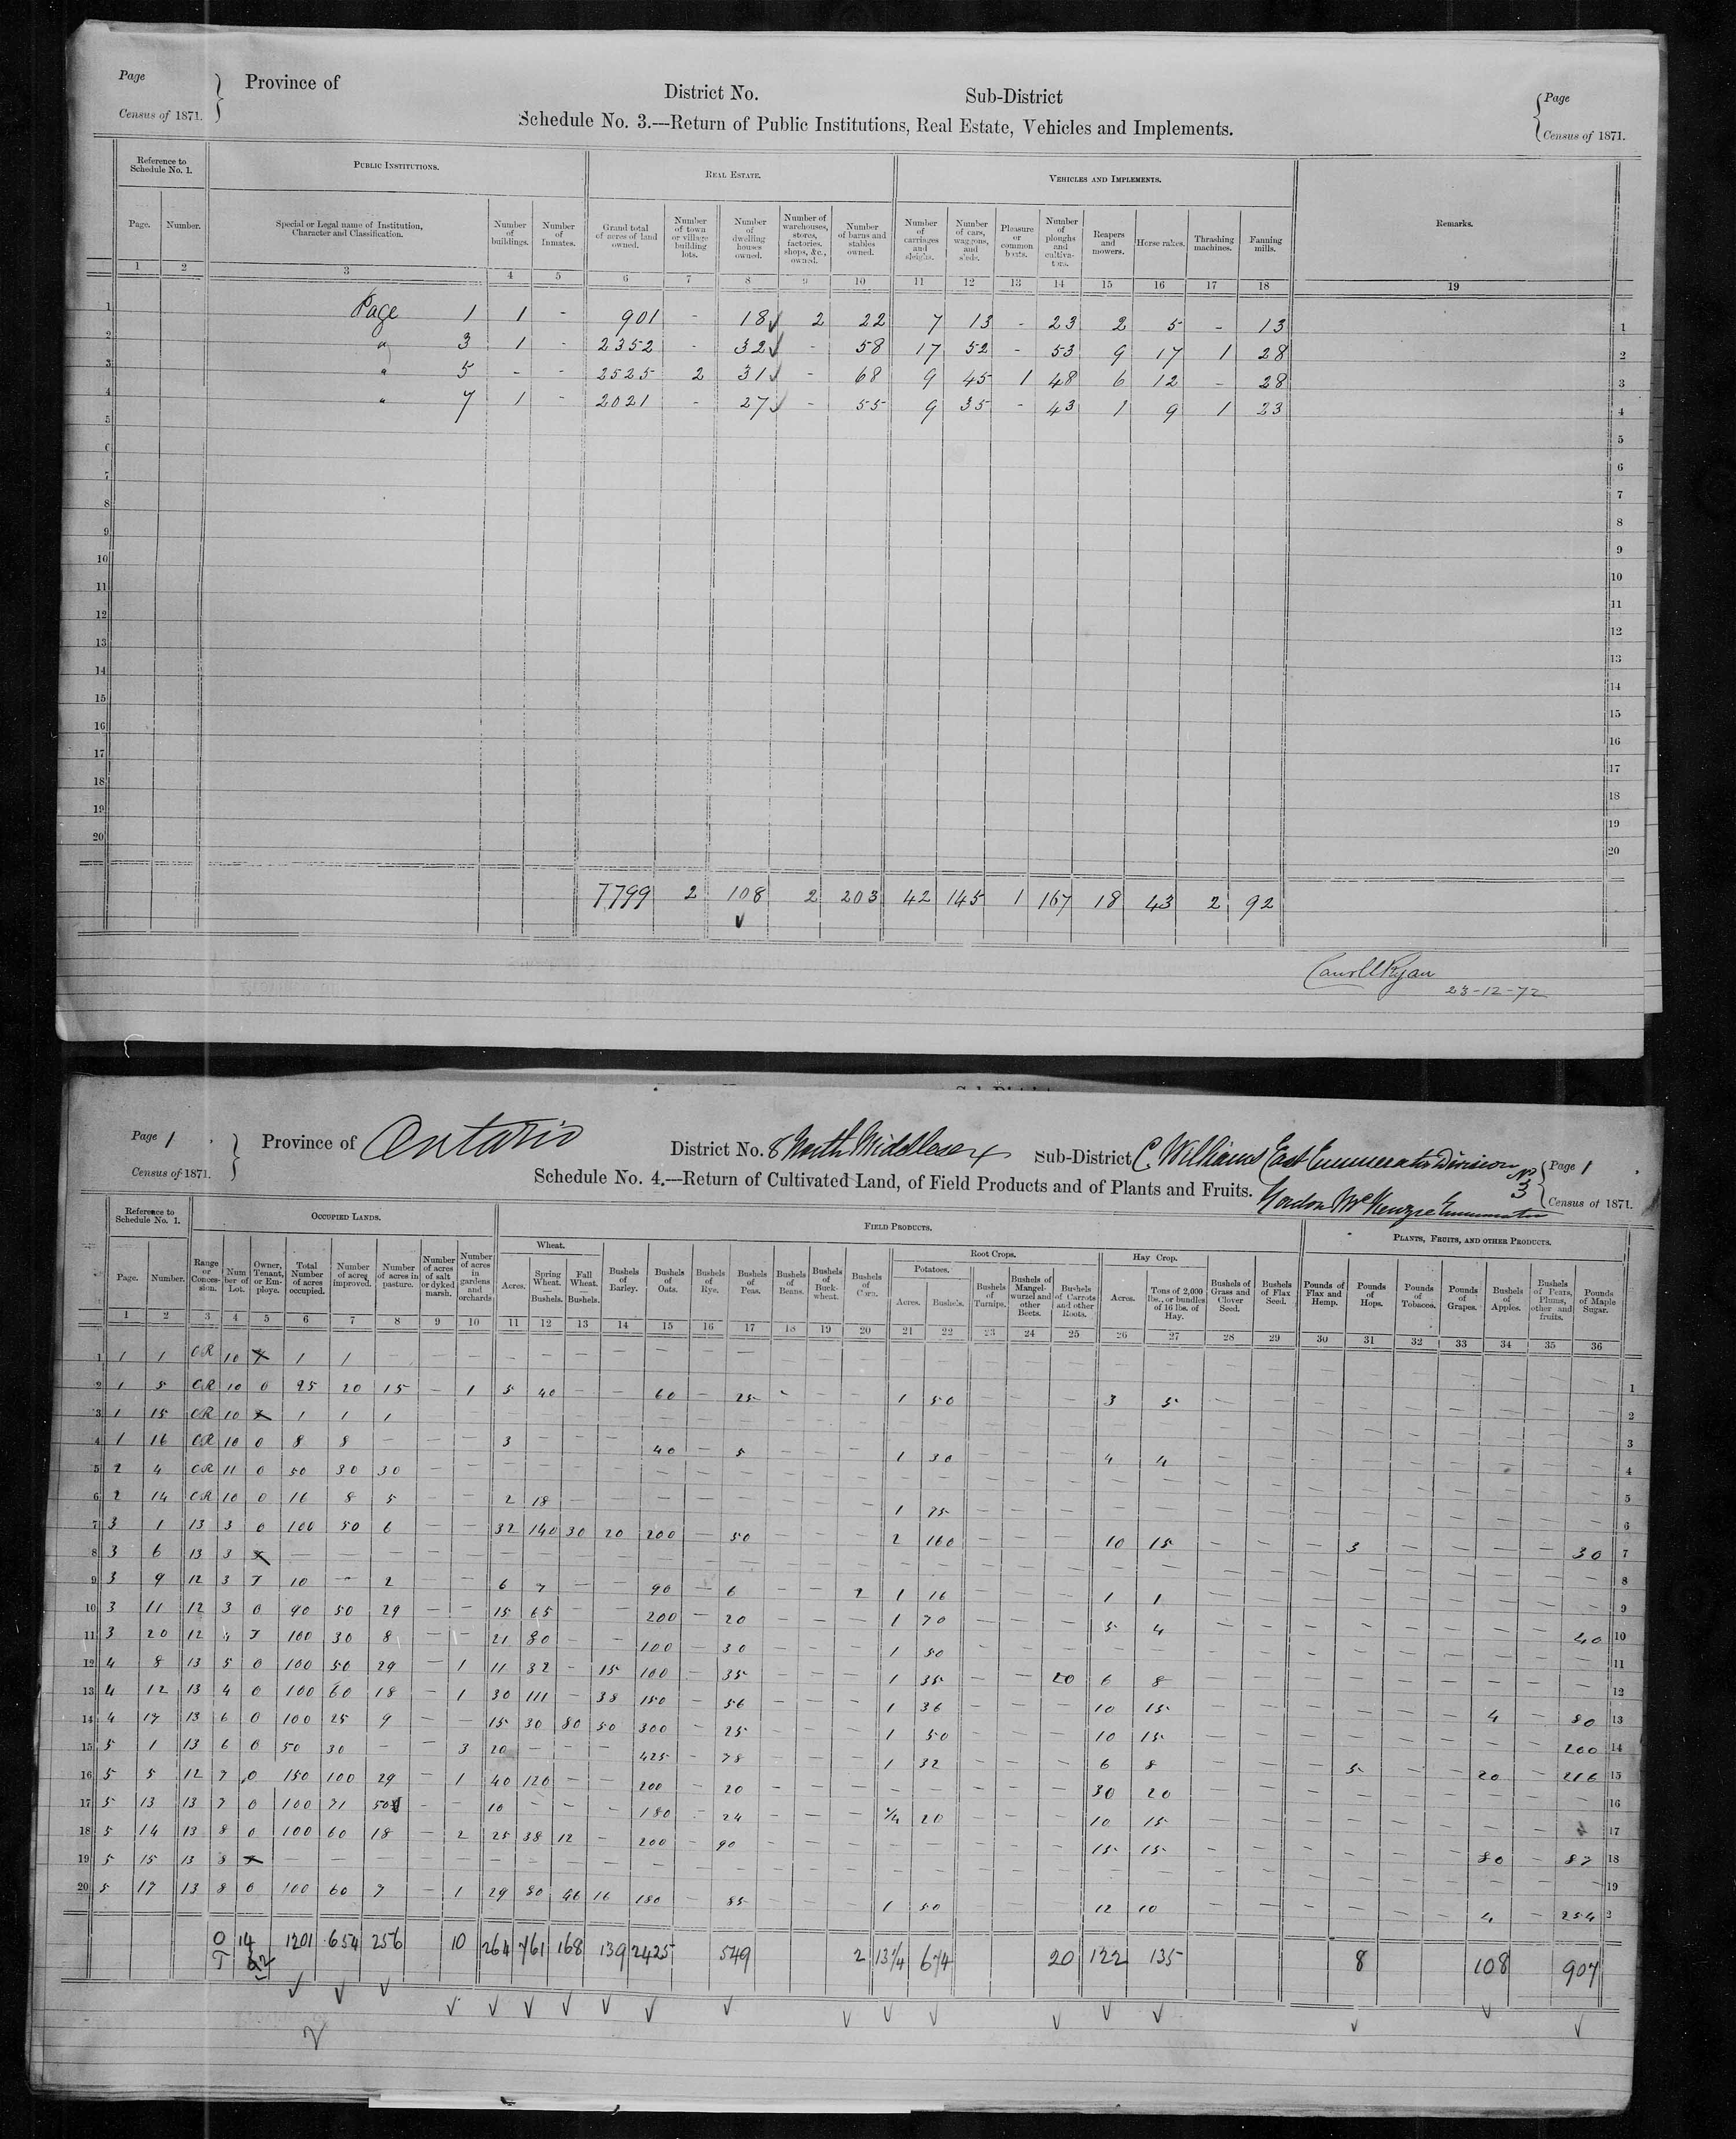 Title: Census of Canada, 1871 - Mikan Number: 142105 - Microform: c-9903